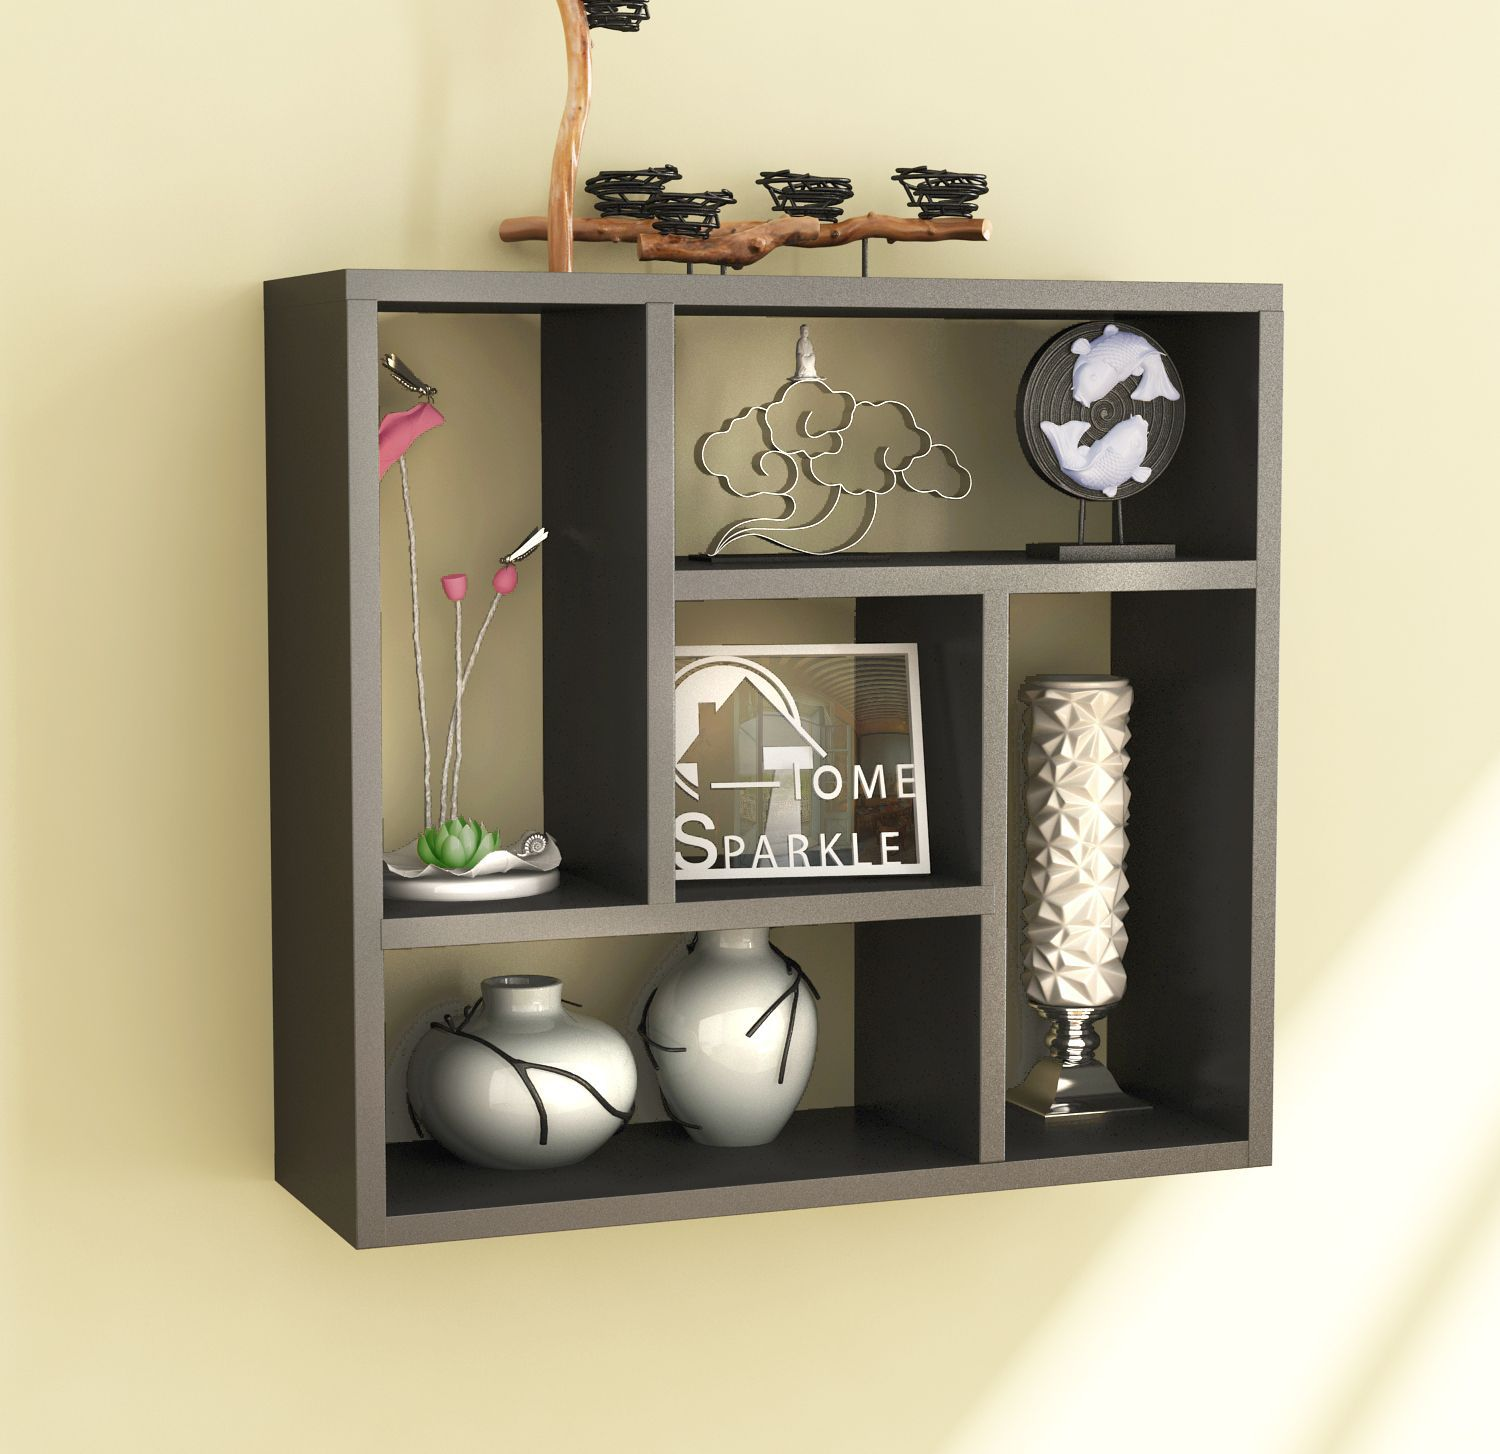 Home Sparkle MDF Square Wall Shelf For Wall Décor -Suitable For Living Room/Bed Room (Designed By Craftsman)